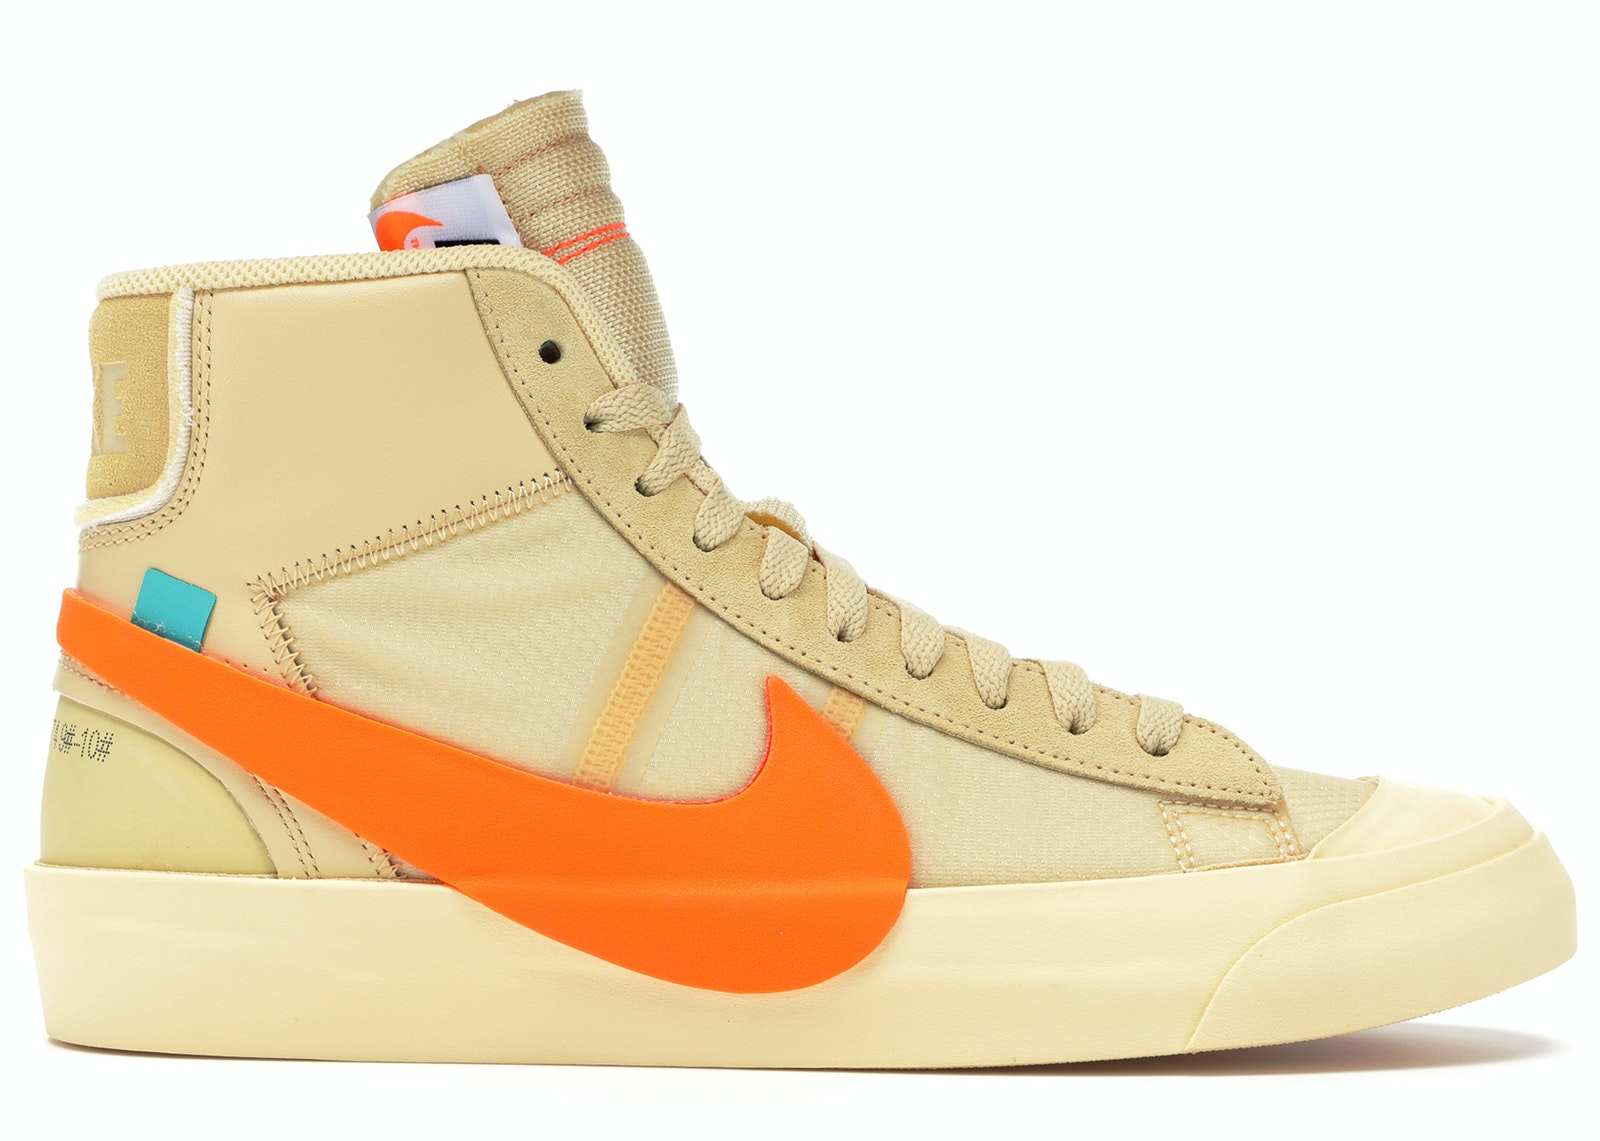 cccc0a469b4eb Nike Blazer Mid Off-White All Hallow\u0027s Eve - AA3832-700;